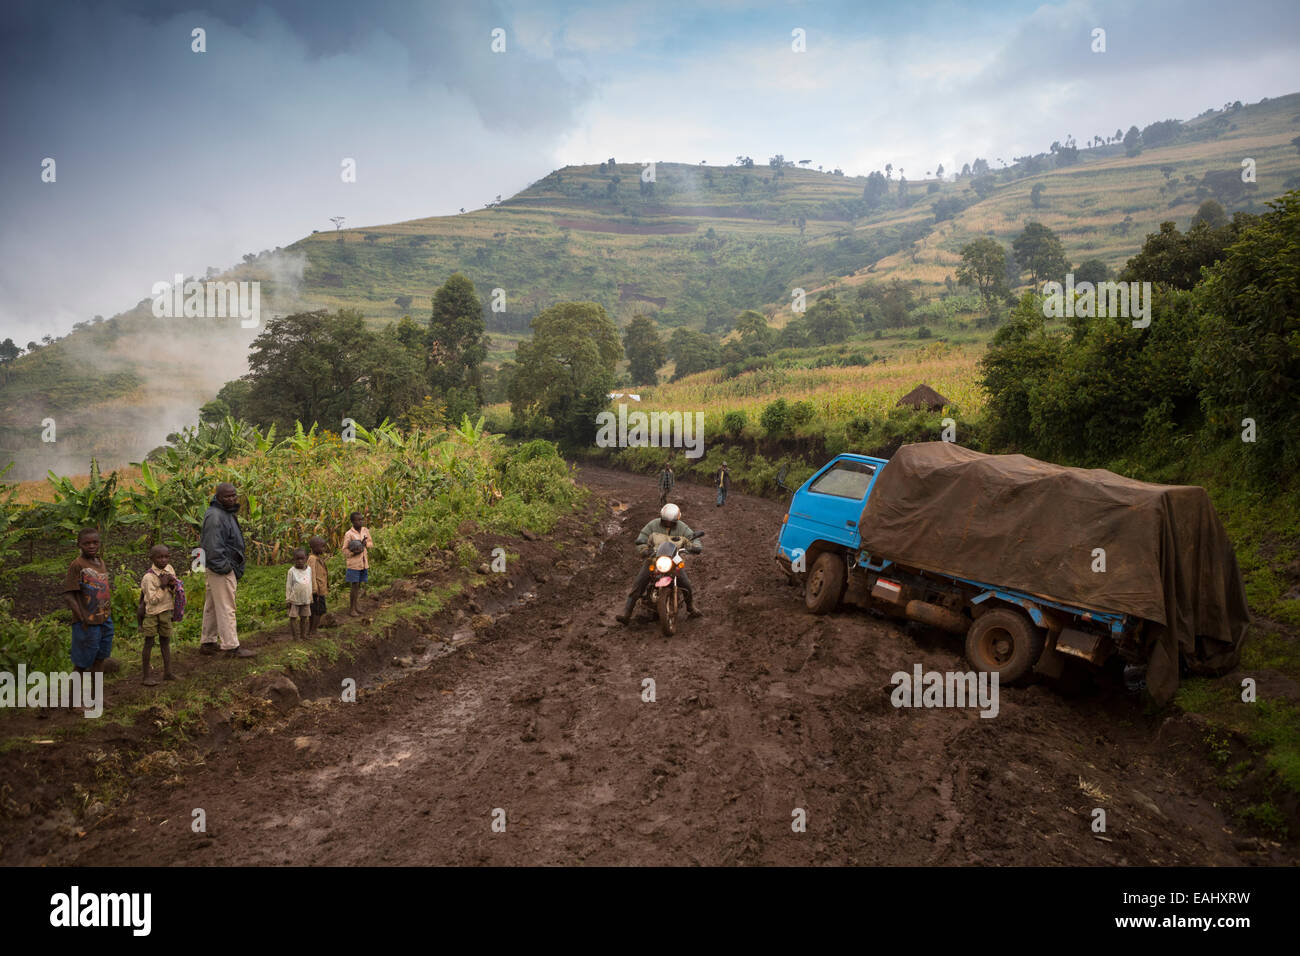 The roads of Bukwo District Uganda, located in the foothills of Mount Elgon, become impassible during times of heavy - Stock Image